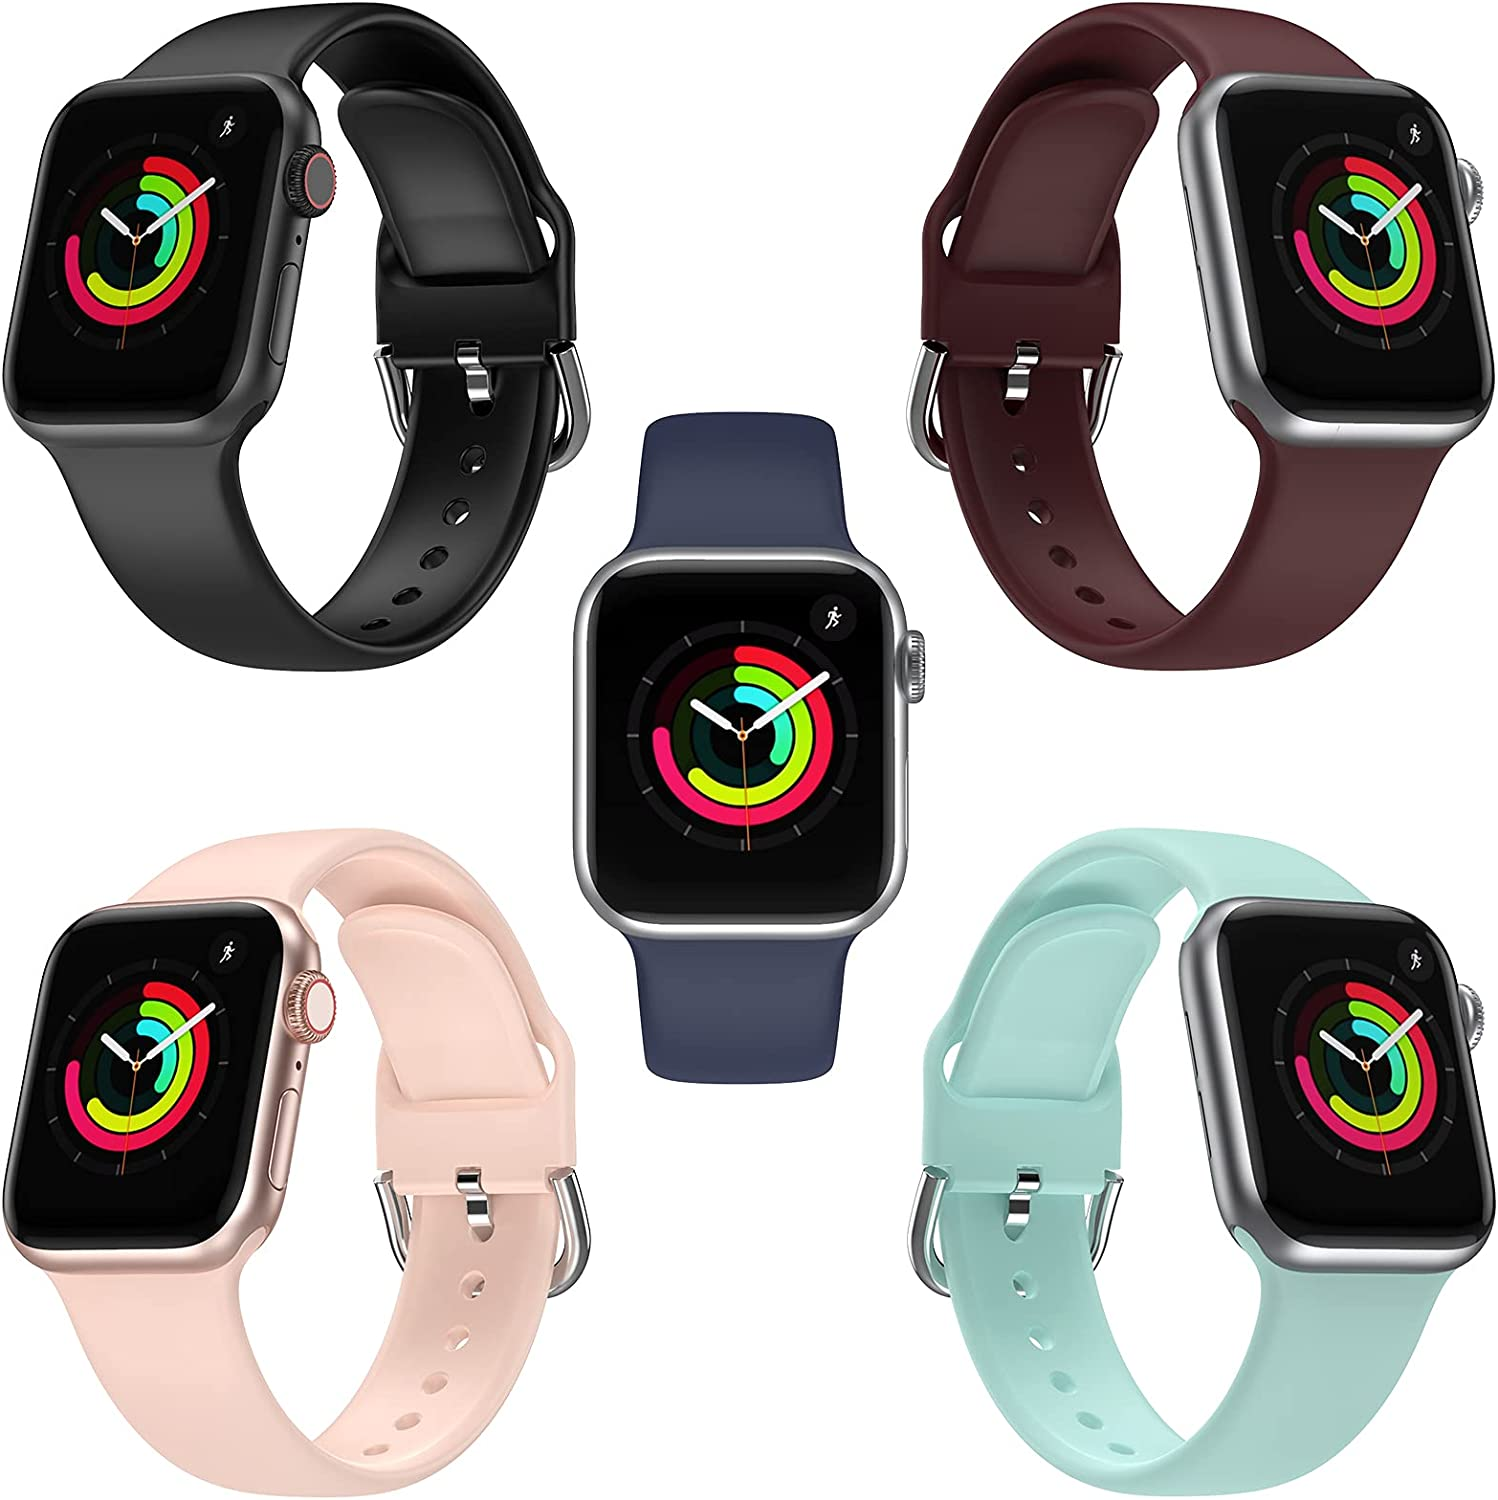 PLWENST 5 Pack Sport Bands Compatible with Apple Watch Bands 44mm 42mm 40mm 38mm iWatch Series SE 6 5 4 3 2 1, Soft Silicone Women Men Watchband Replacement Strap Band iWatch Accessories Sport Edition